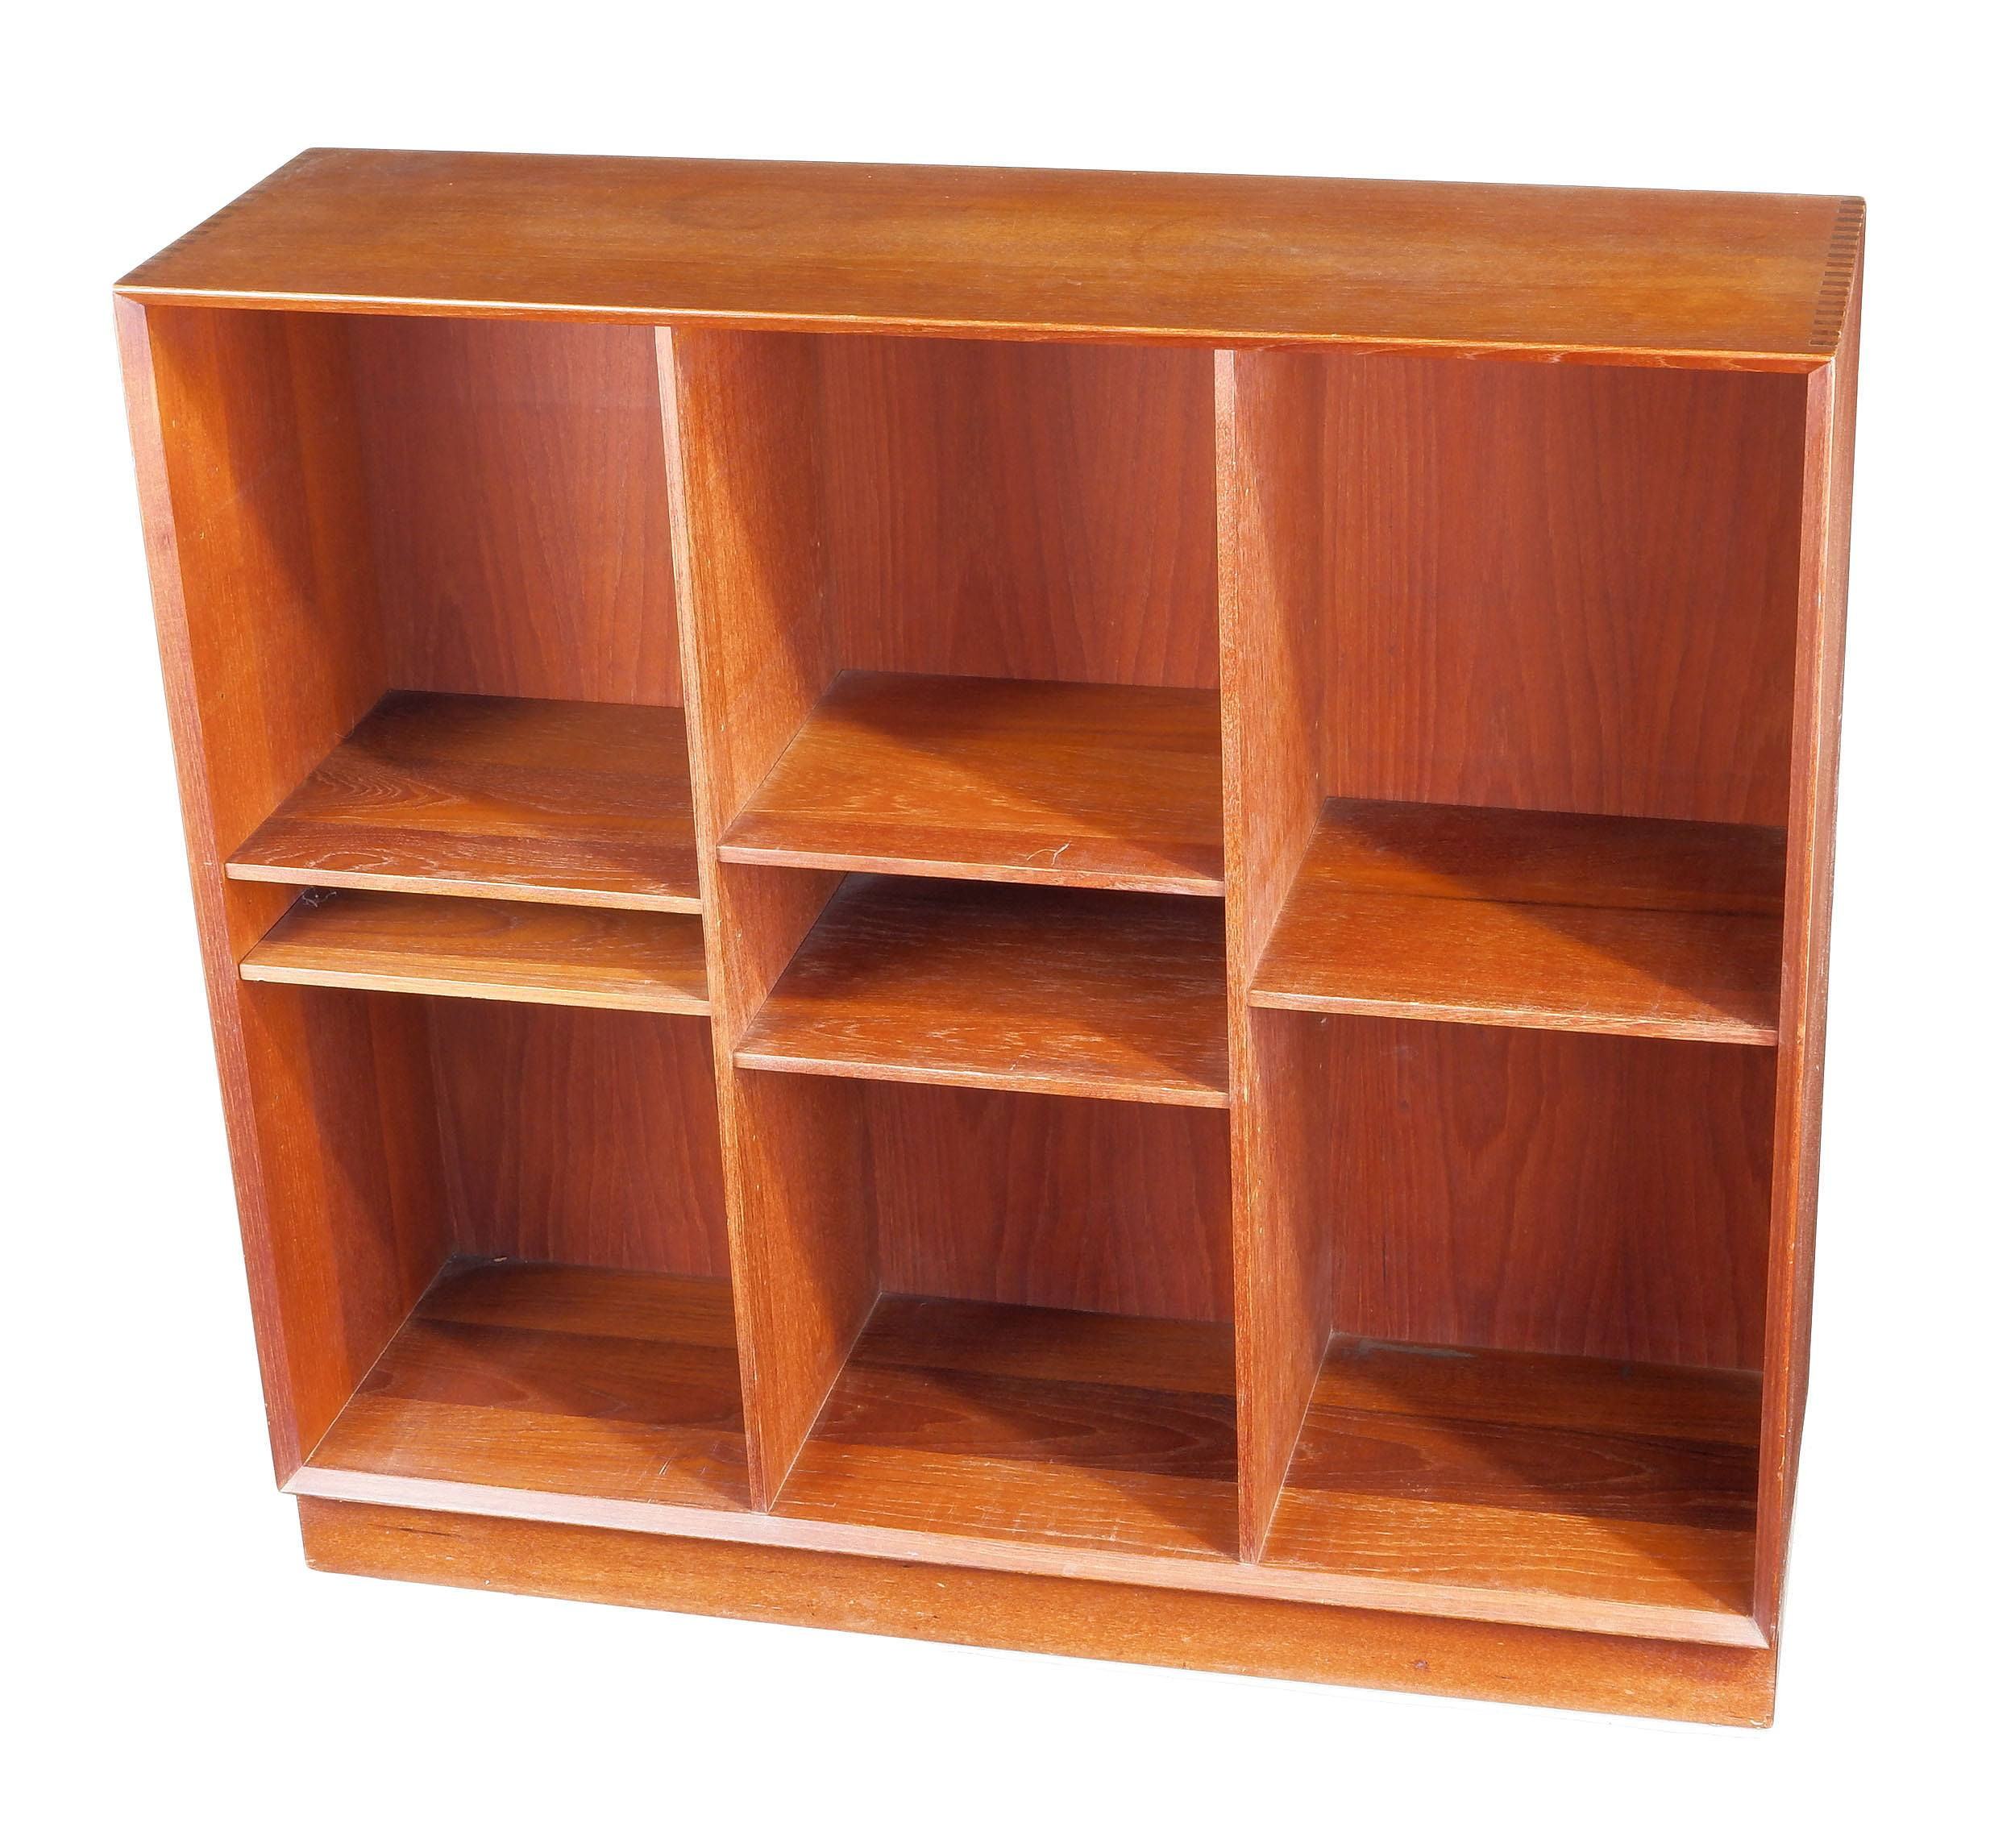 'Danish Teak Bookcase with Exposed Finger Joints'